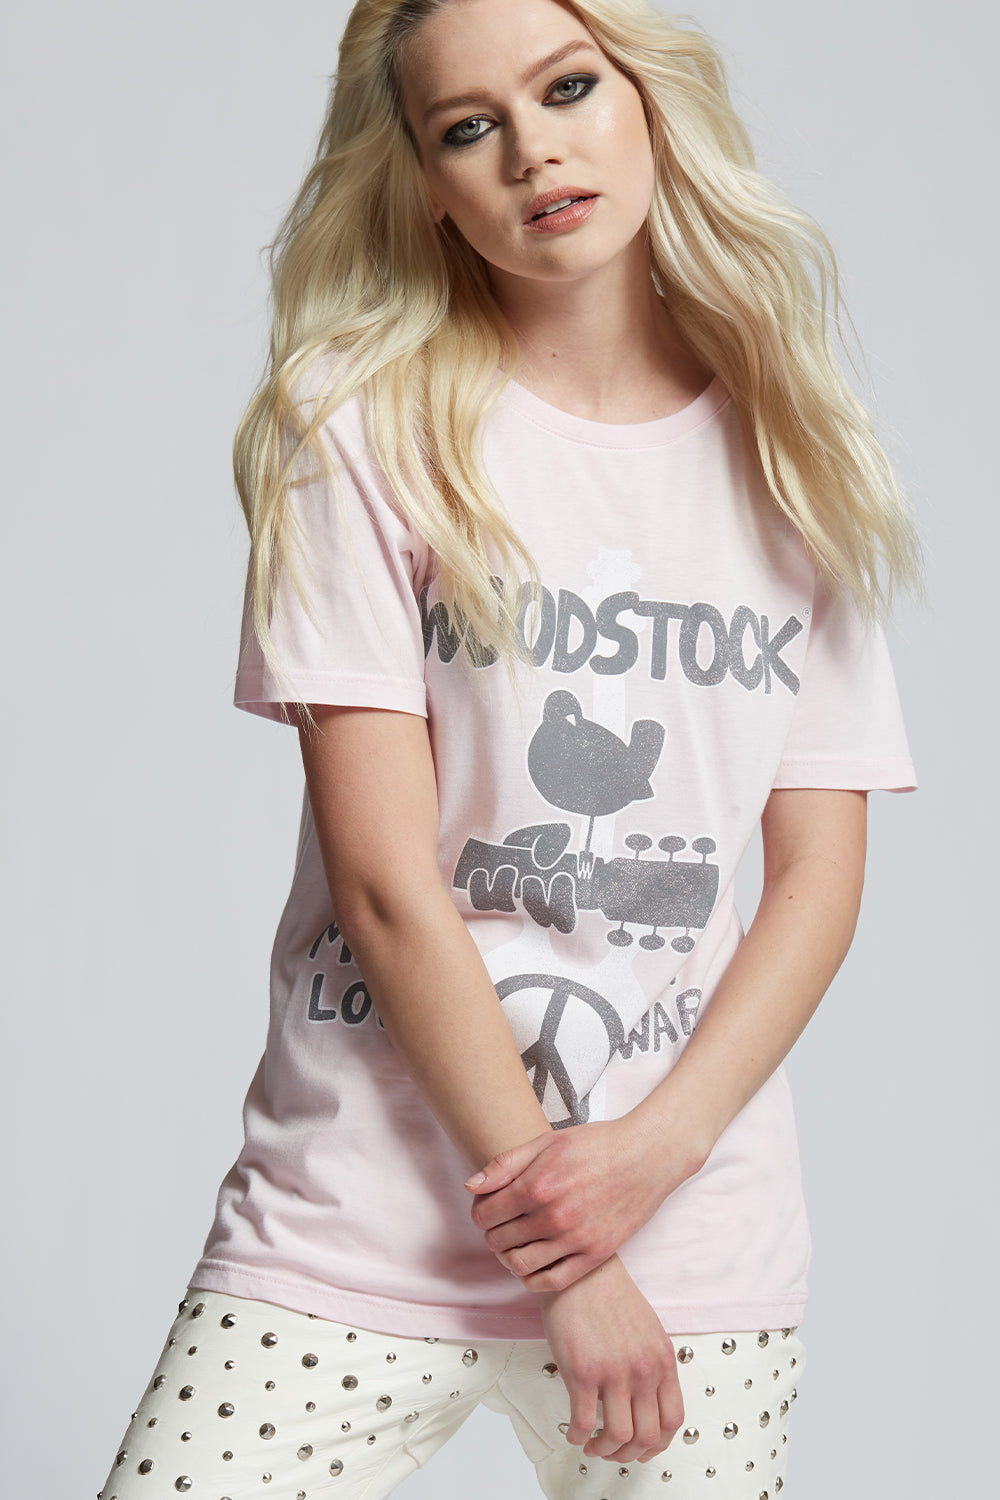 Woodstock Guitar Tee